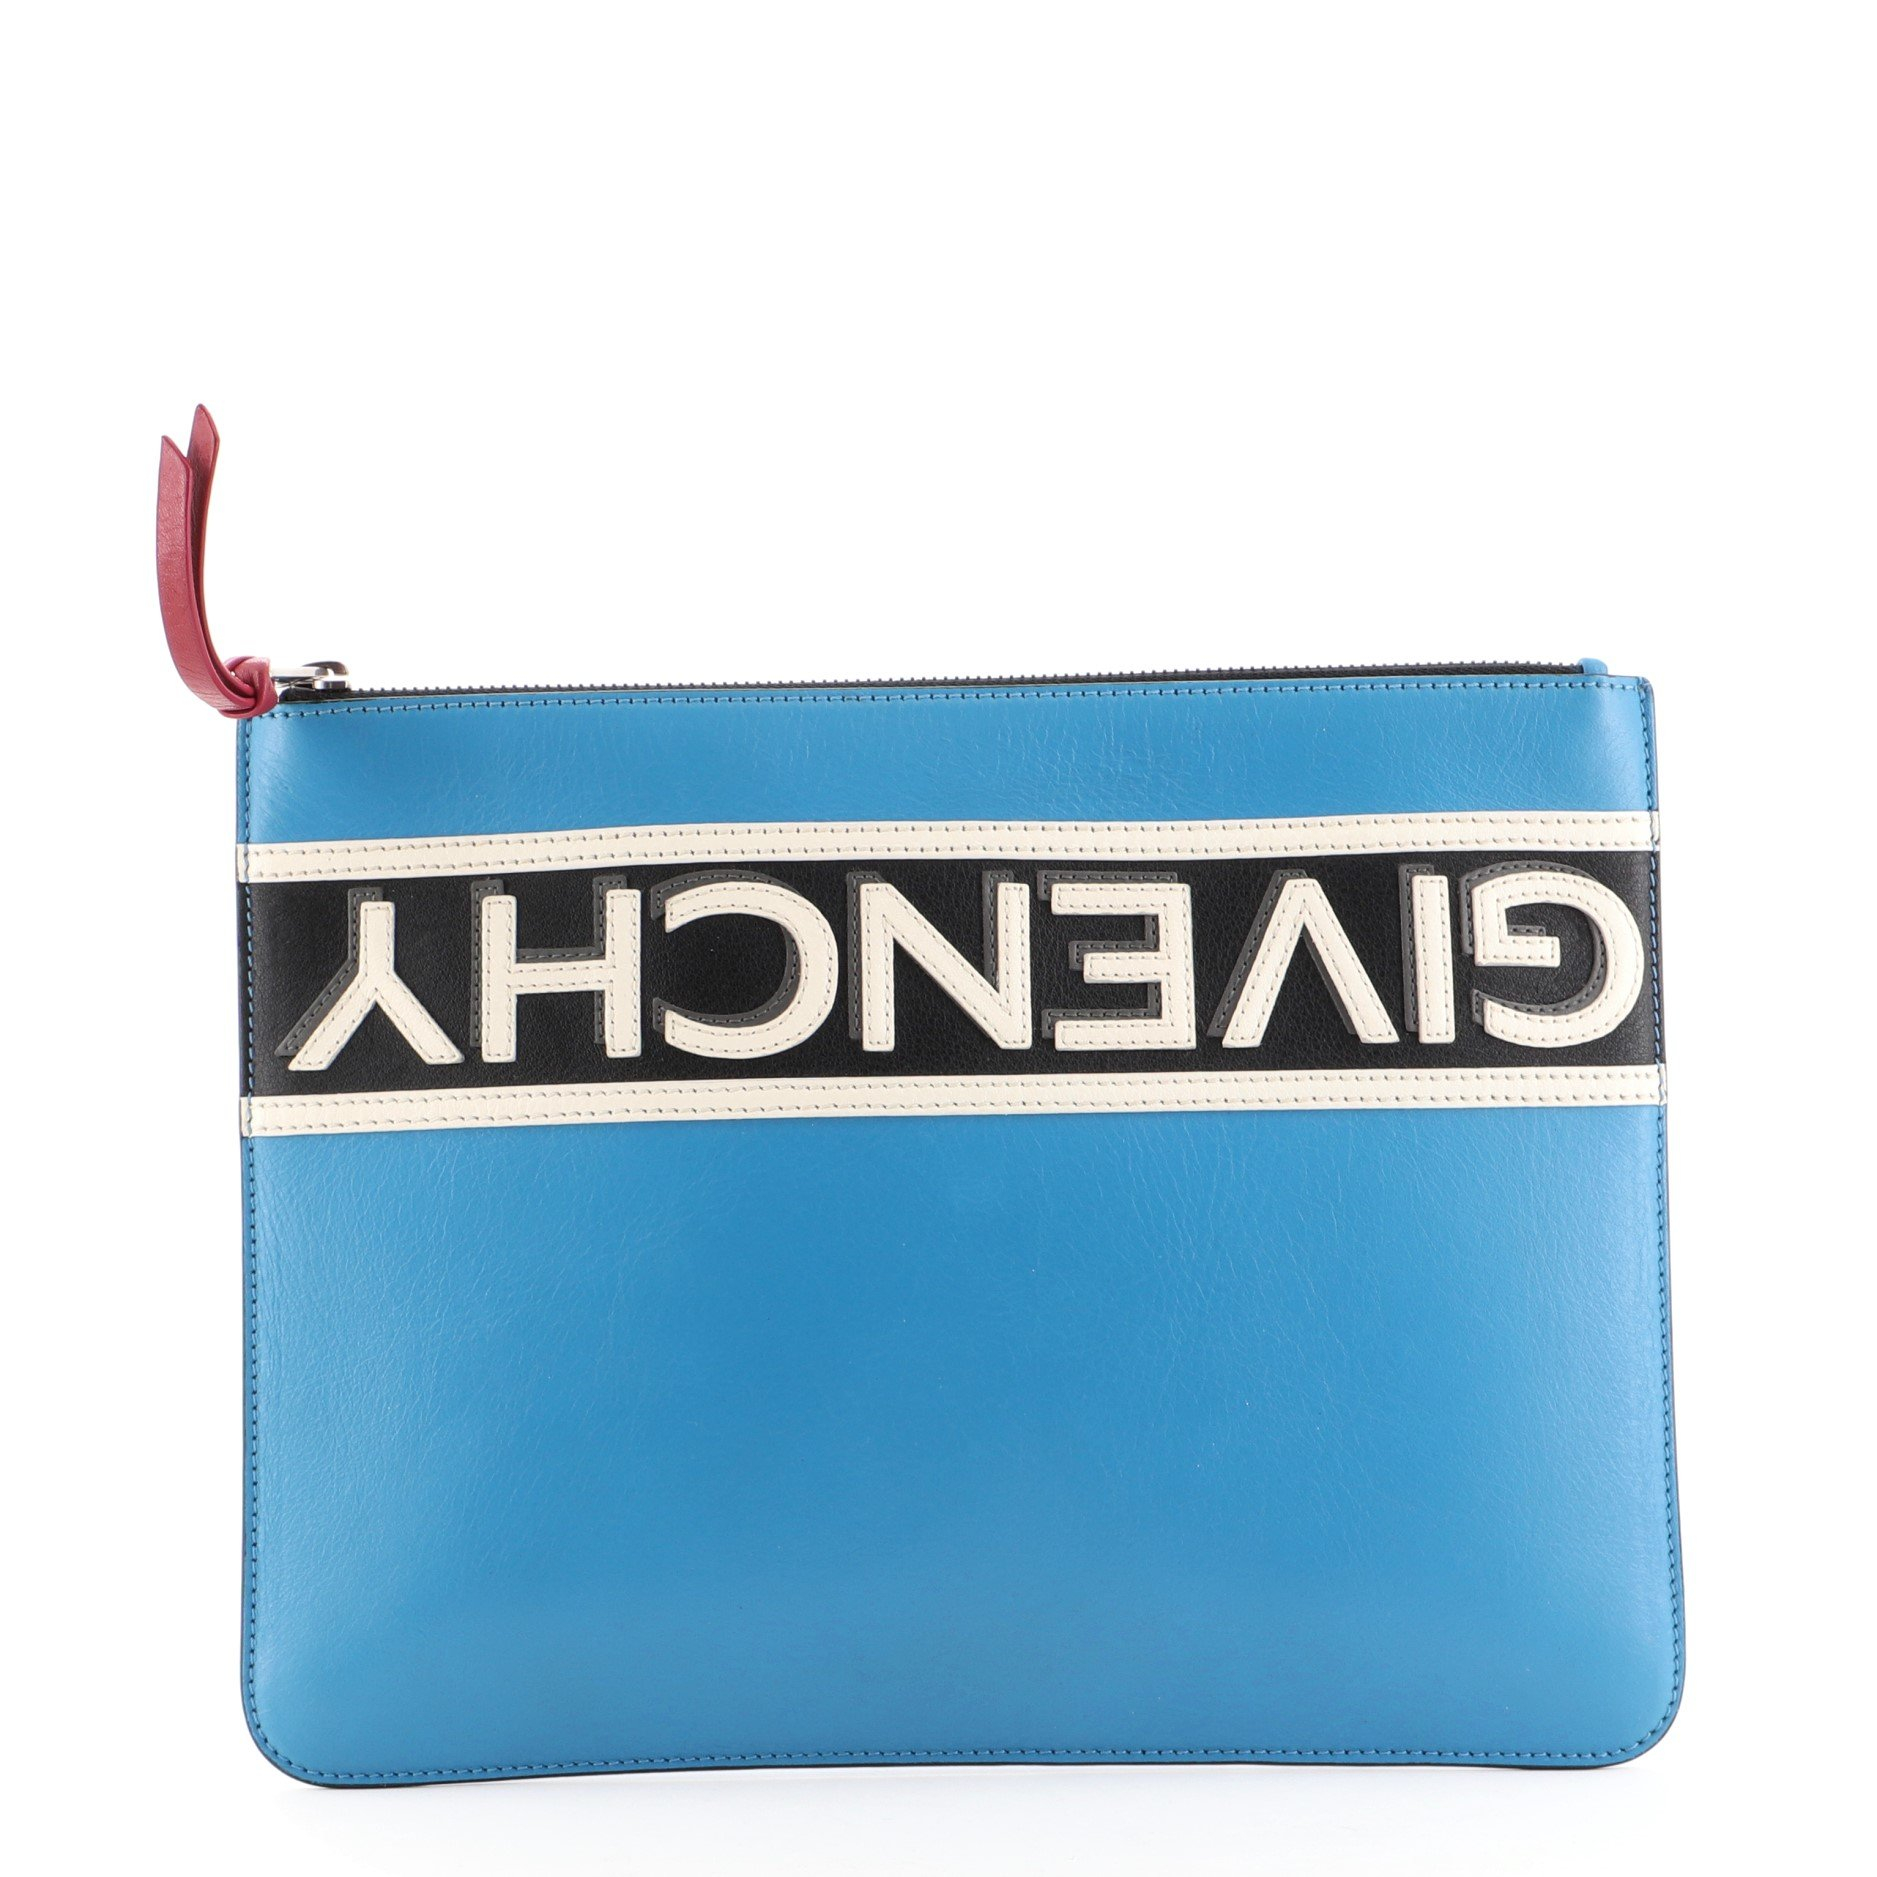 accessory Mod 597 leather wallet for lady elegant detail Christmas fine gift add-on leather dress